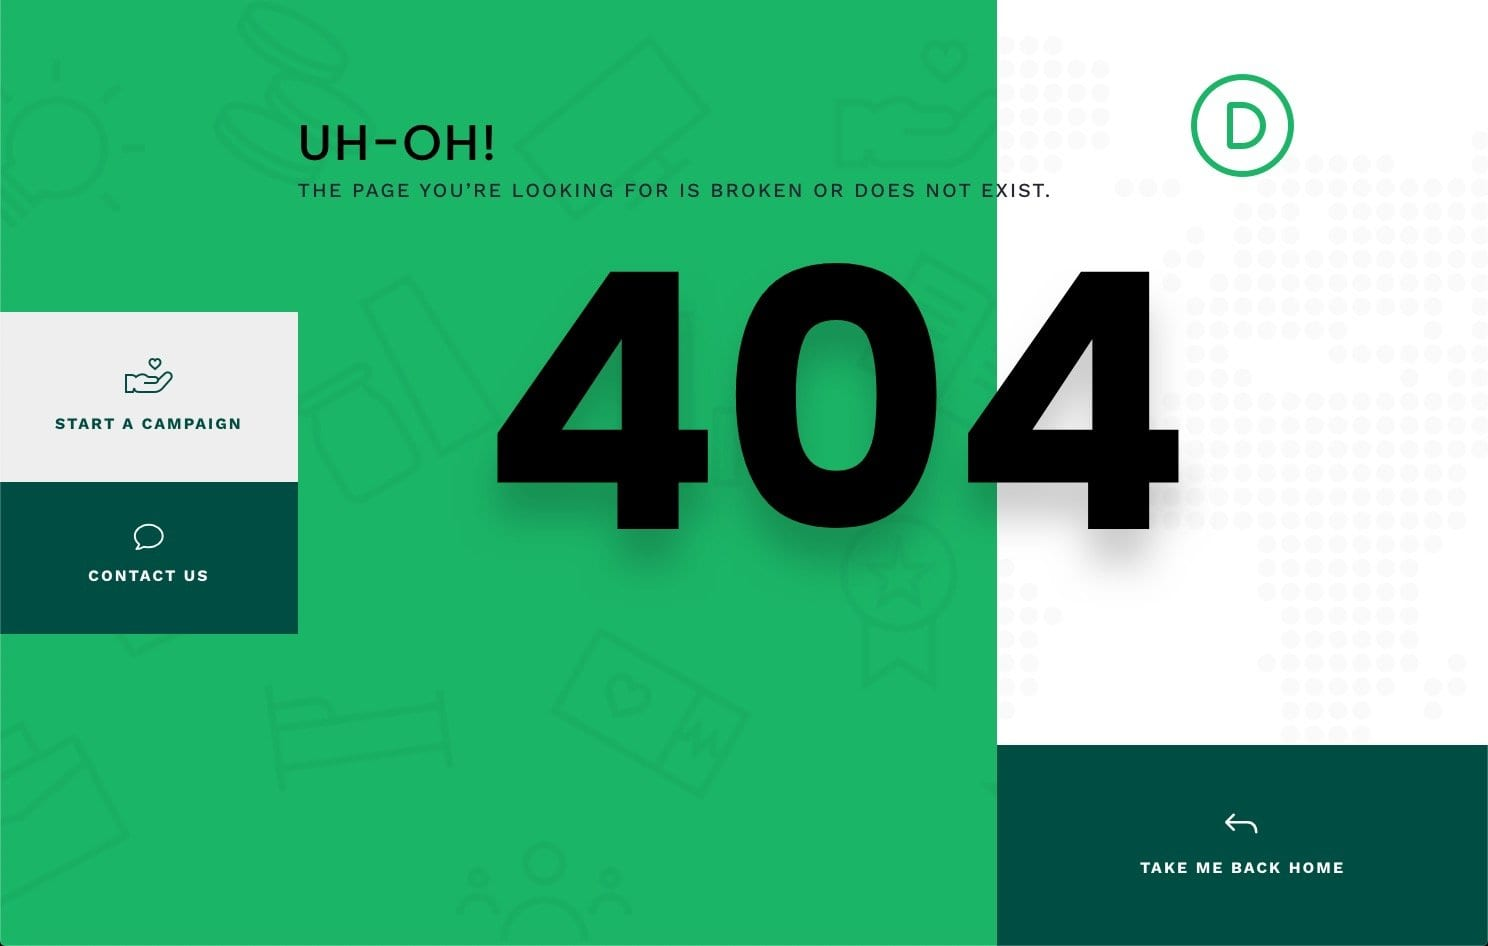 download-a-free-404-page-template-for-divis-crowdfunding-layout-pack Download a FREE 404 Page Template for Divi's Crowdfunding Layout Pack